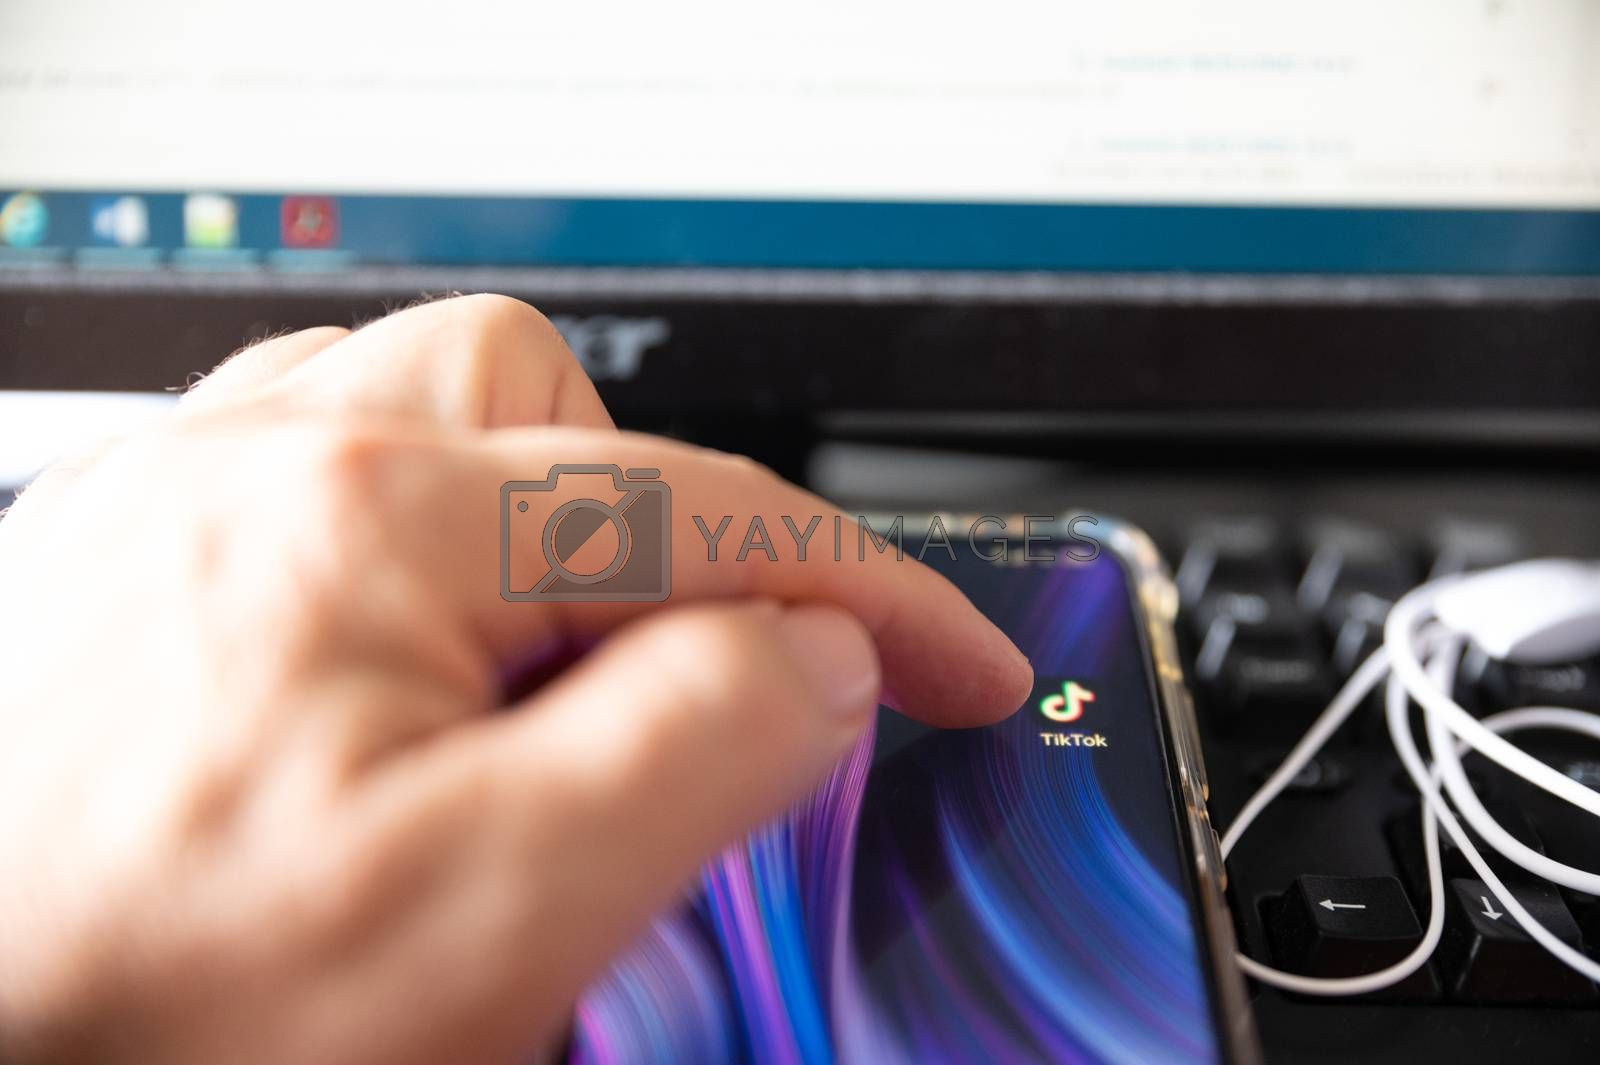 Turin, Piedmont, Italy. July 2020. Against the background of a workplace, close-up image of the smartphone display: the logo of the Tik Tok application is highlighted, the finger is about to touch it.